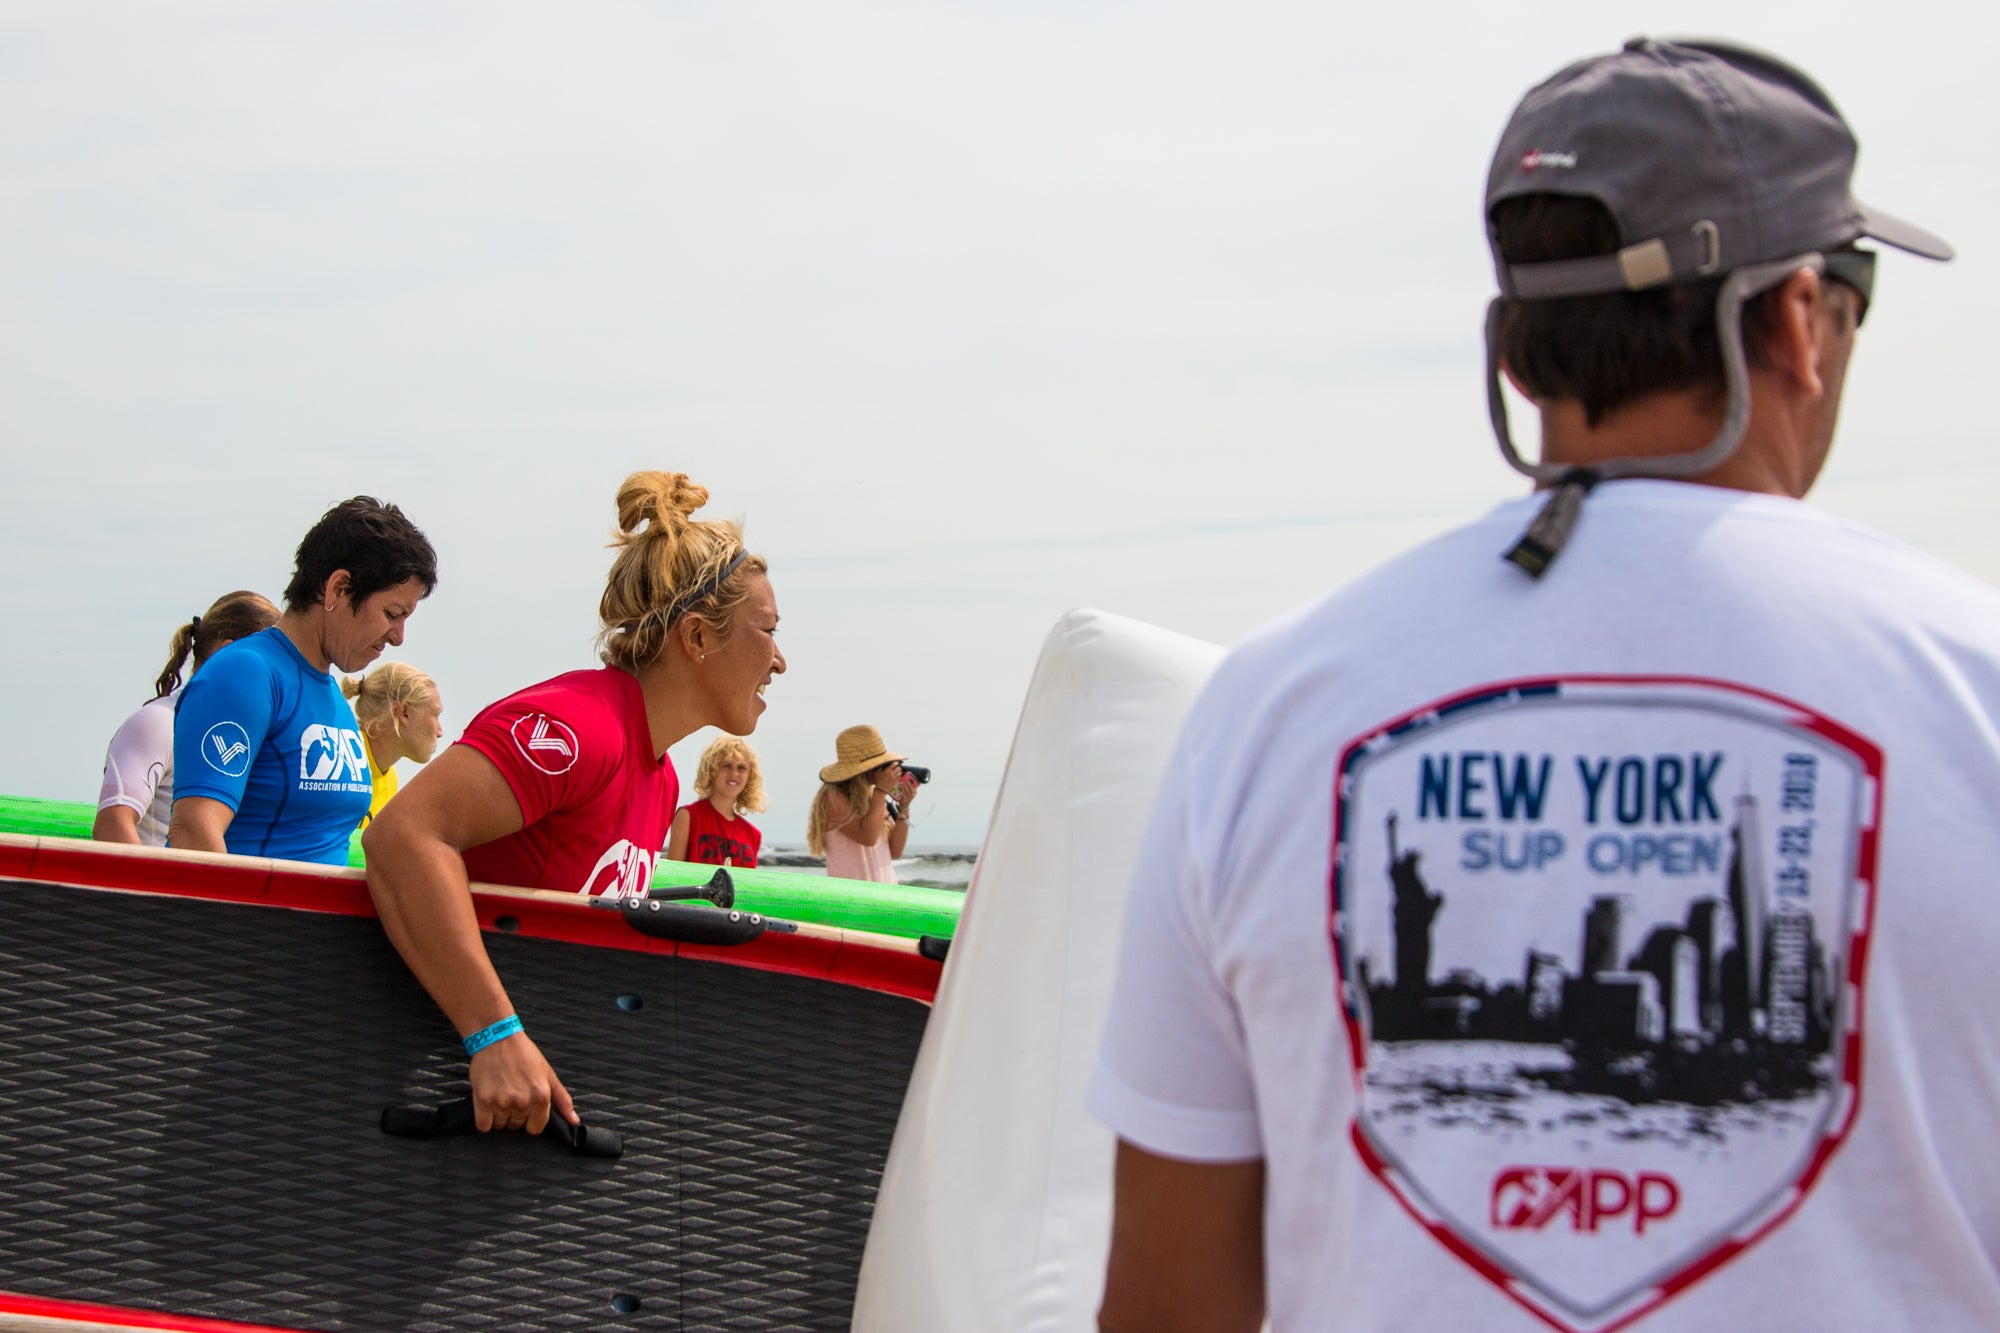 SUP racing at the New York SUP Open - APP World Tour 2019